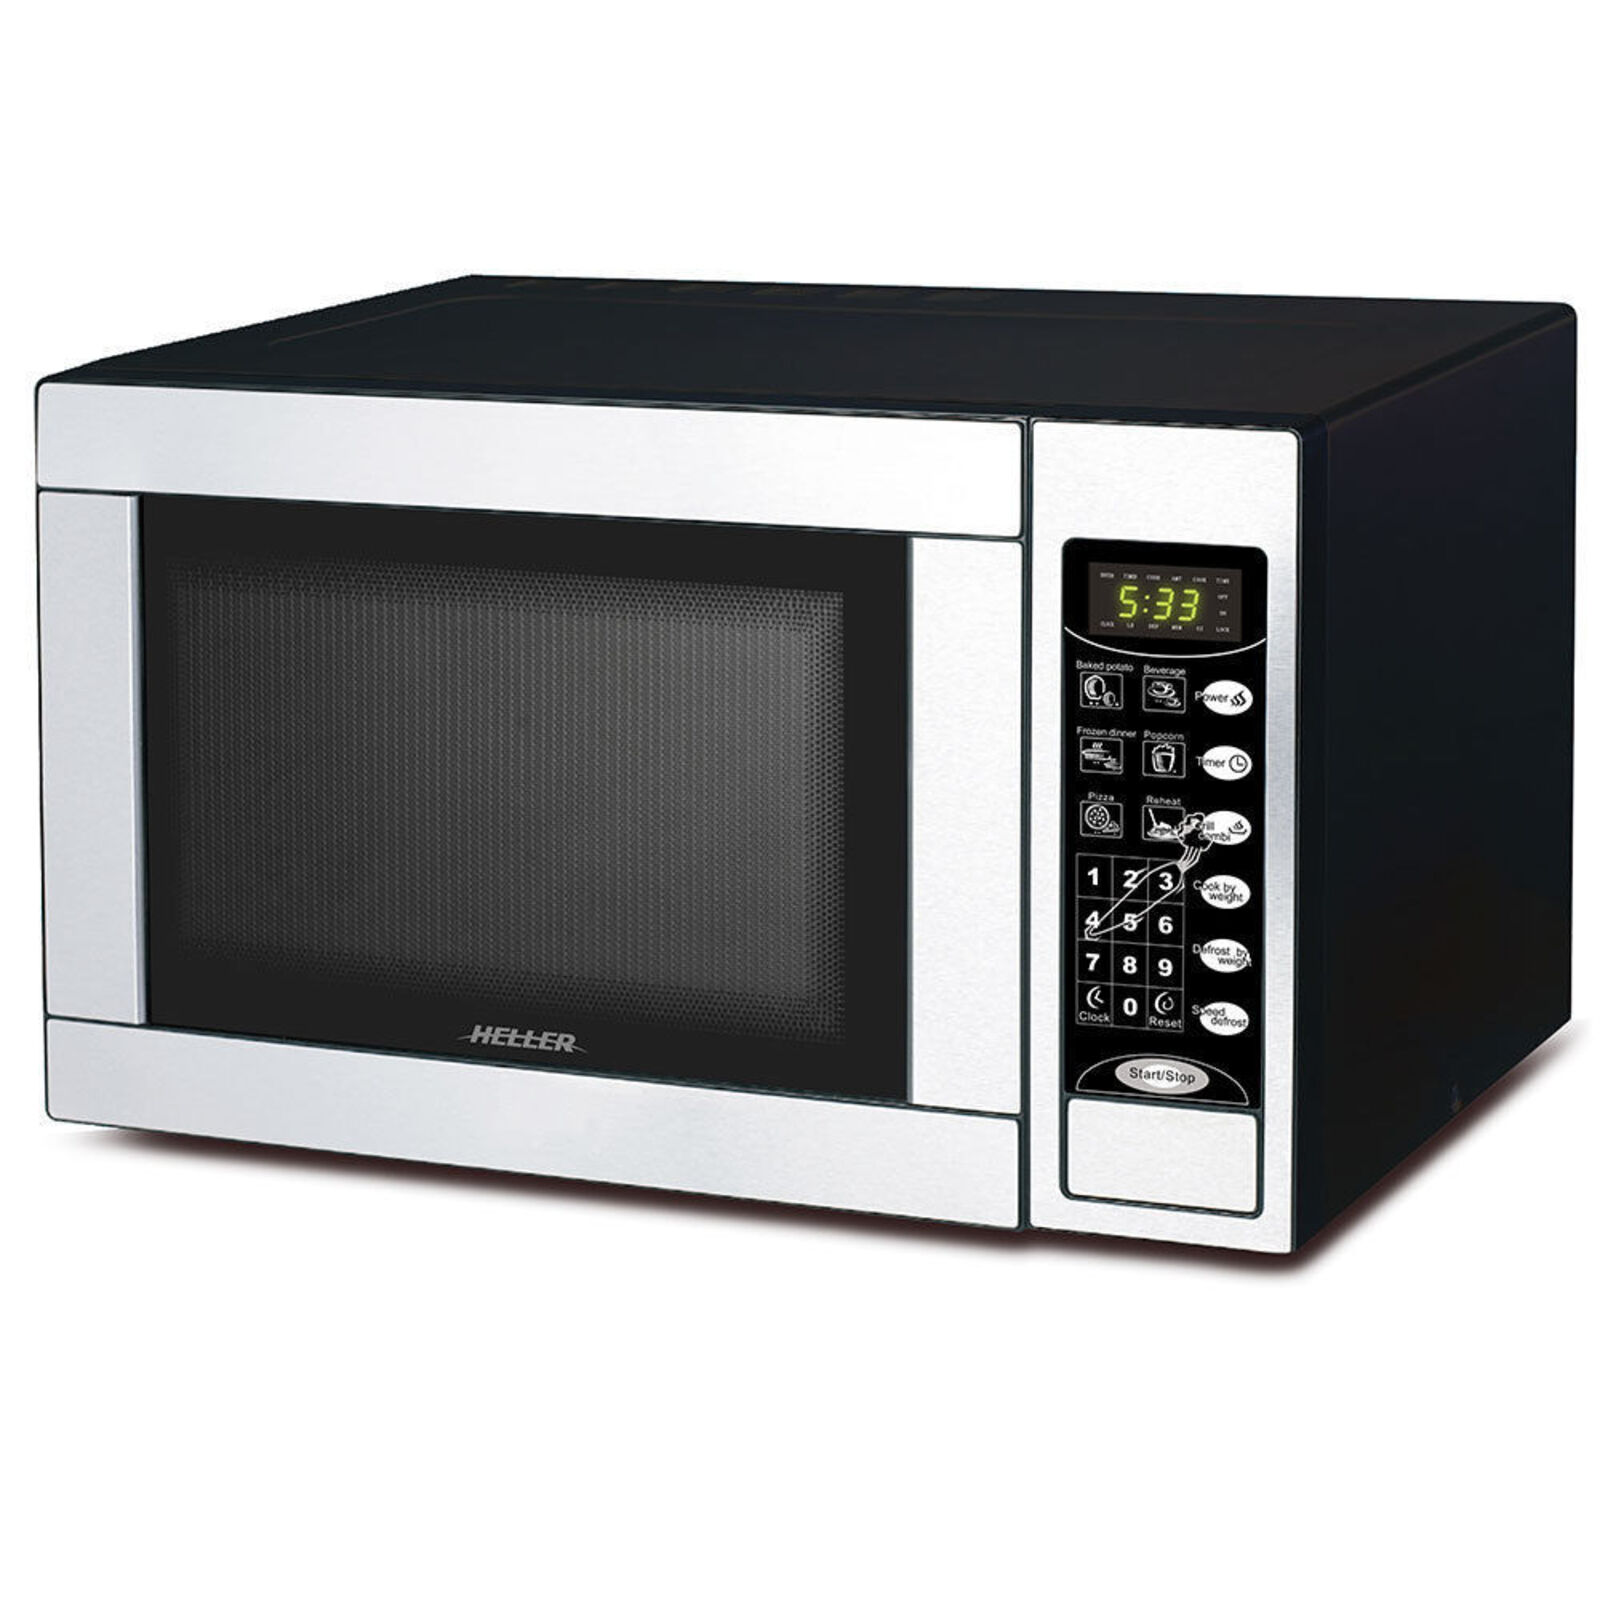 Heller 1000W 30L Electric LED Digital Microwave Oven w/Grill toaster/Grilling